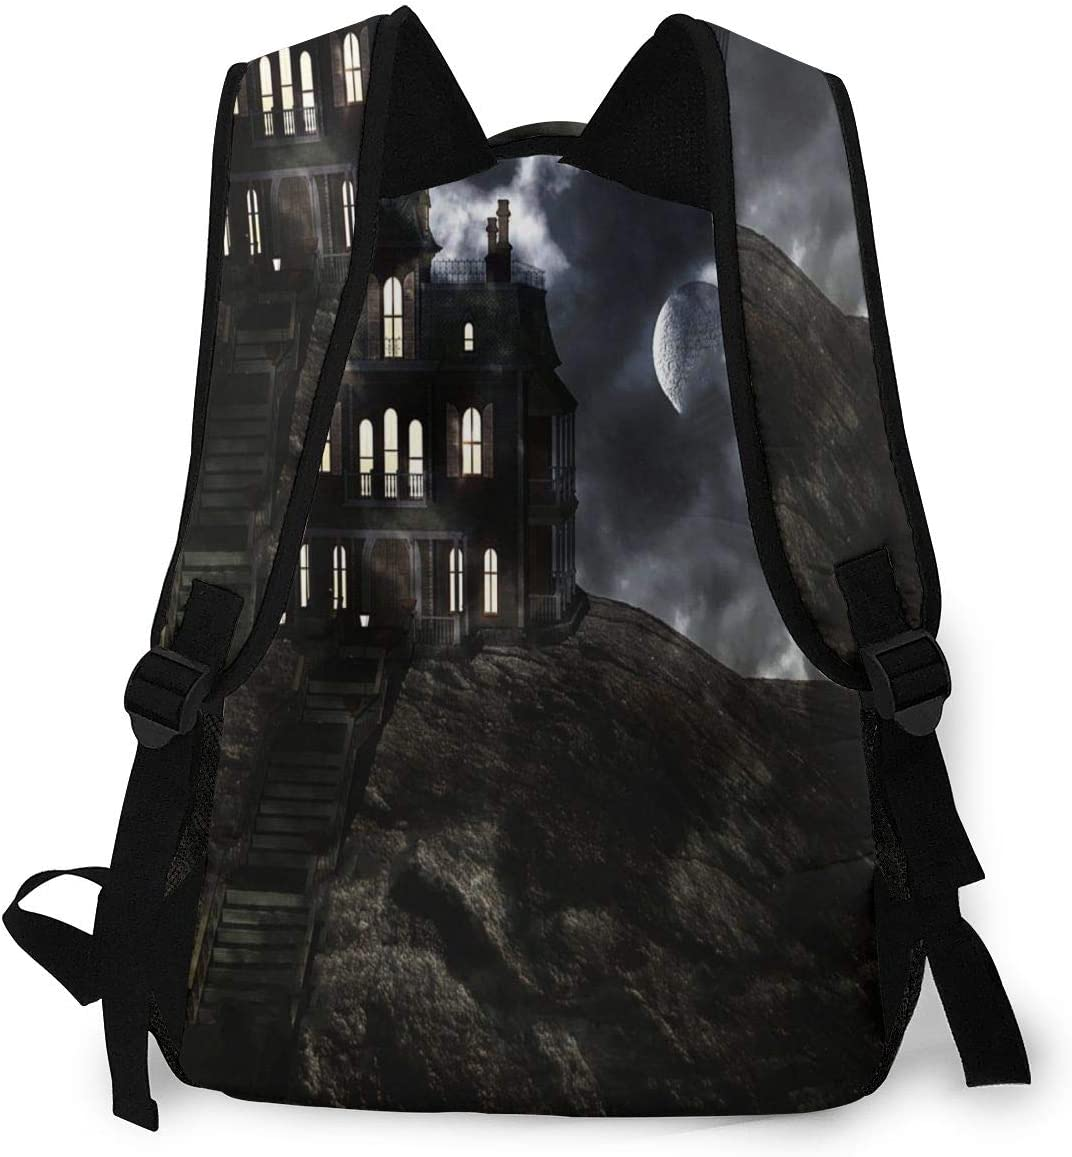 Laptop Backpack,15.6 Inch Stylish College School Backpack Castle with Moon Haunted House Water Resistant Casual Daypack Rucksack Gym Bag for Women//Girls//Business//Travel